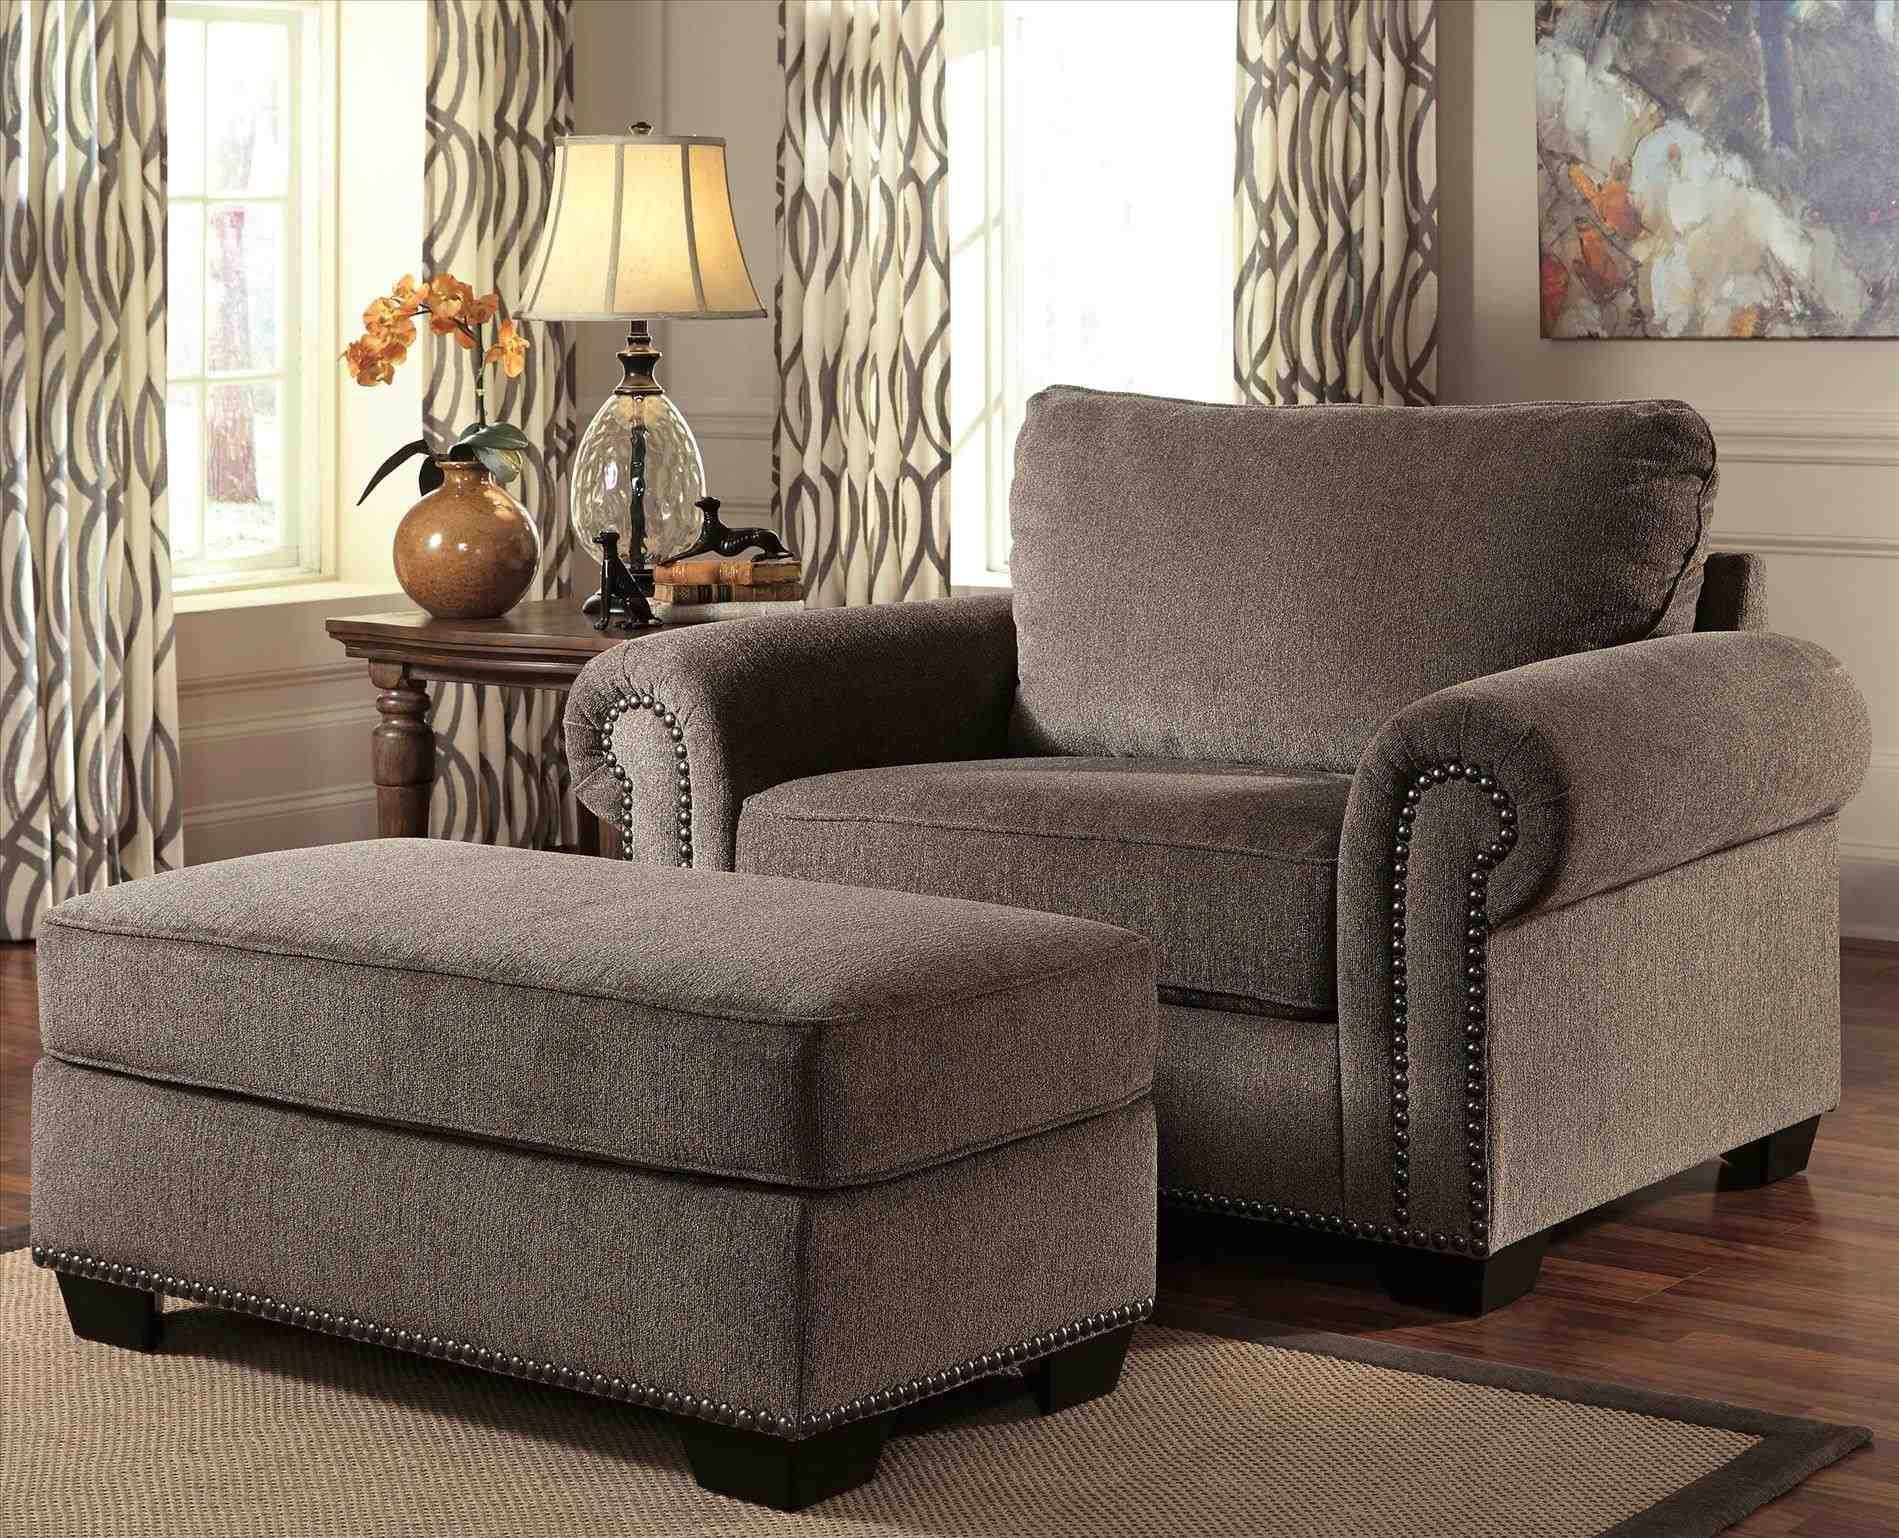 Chair And A Half With Ottoman Sale Living room chairs